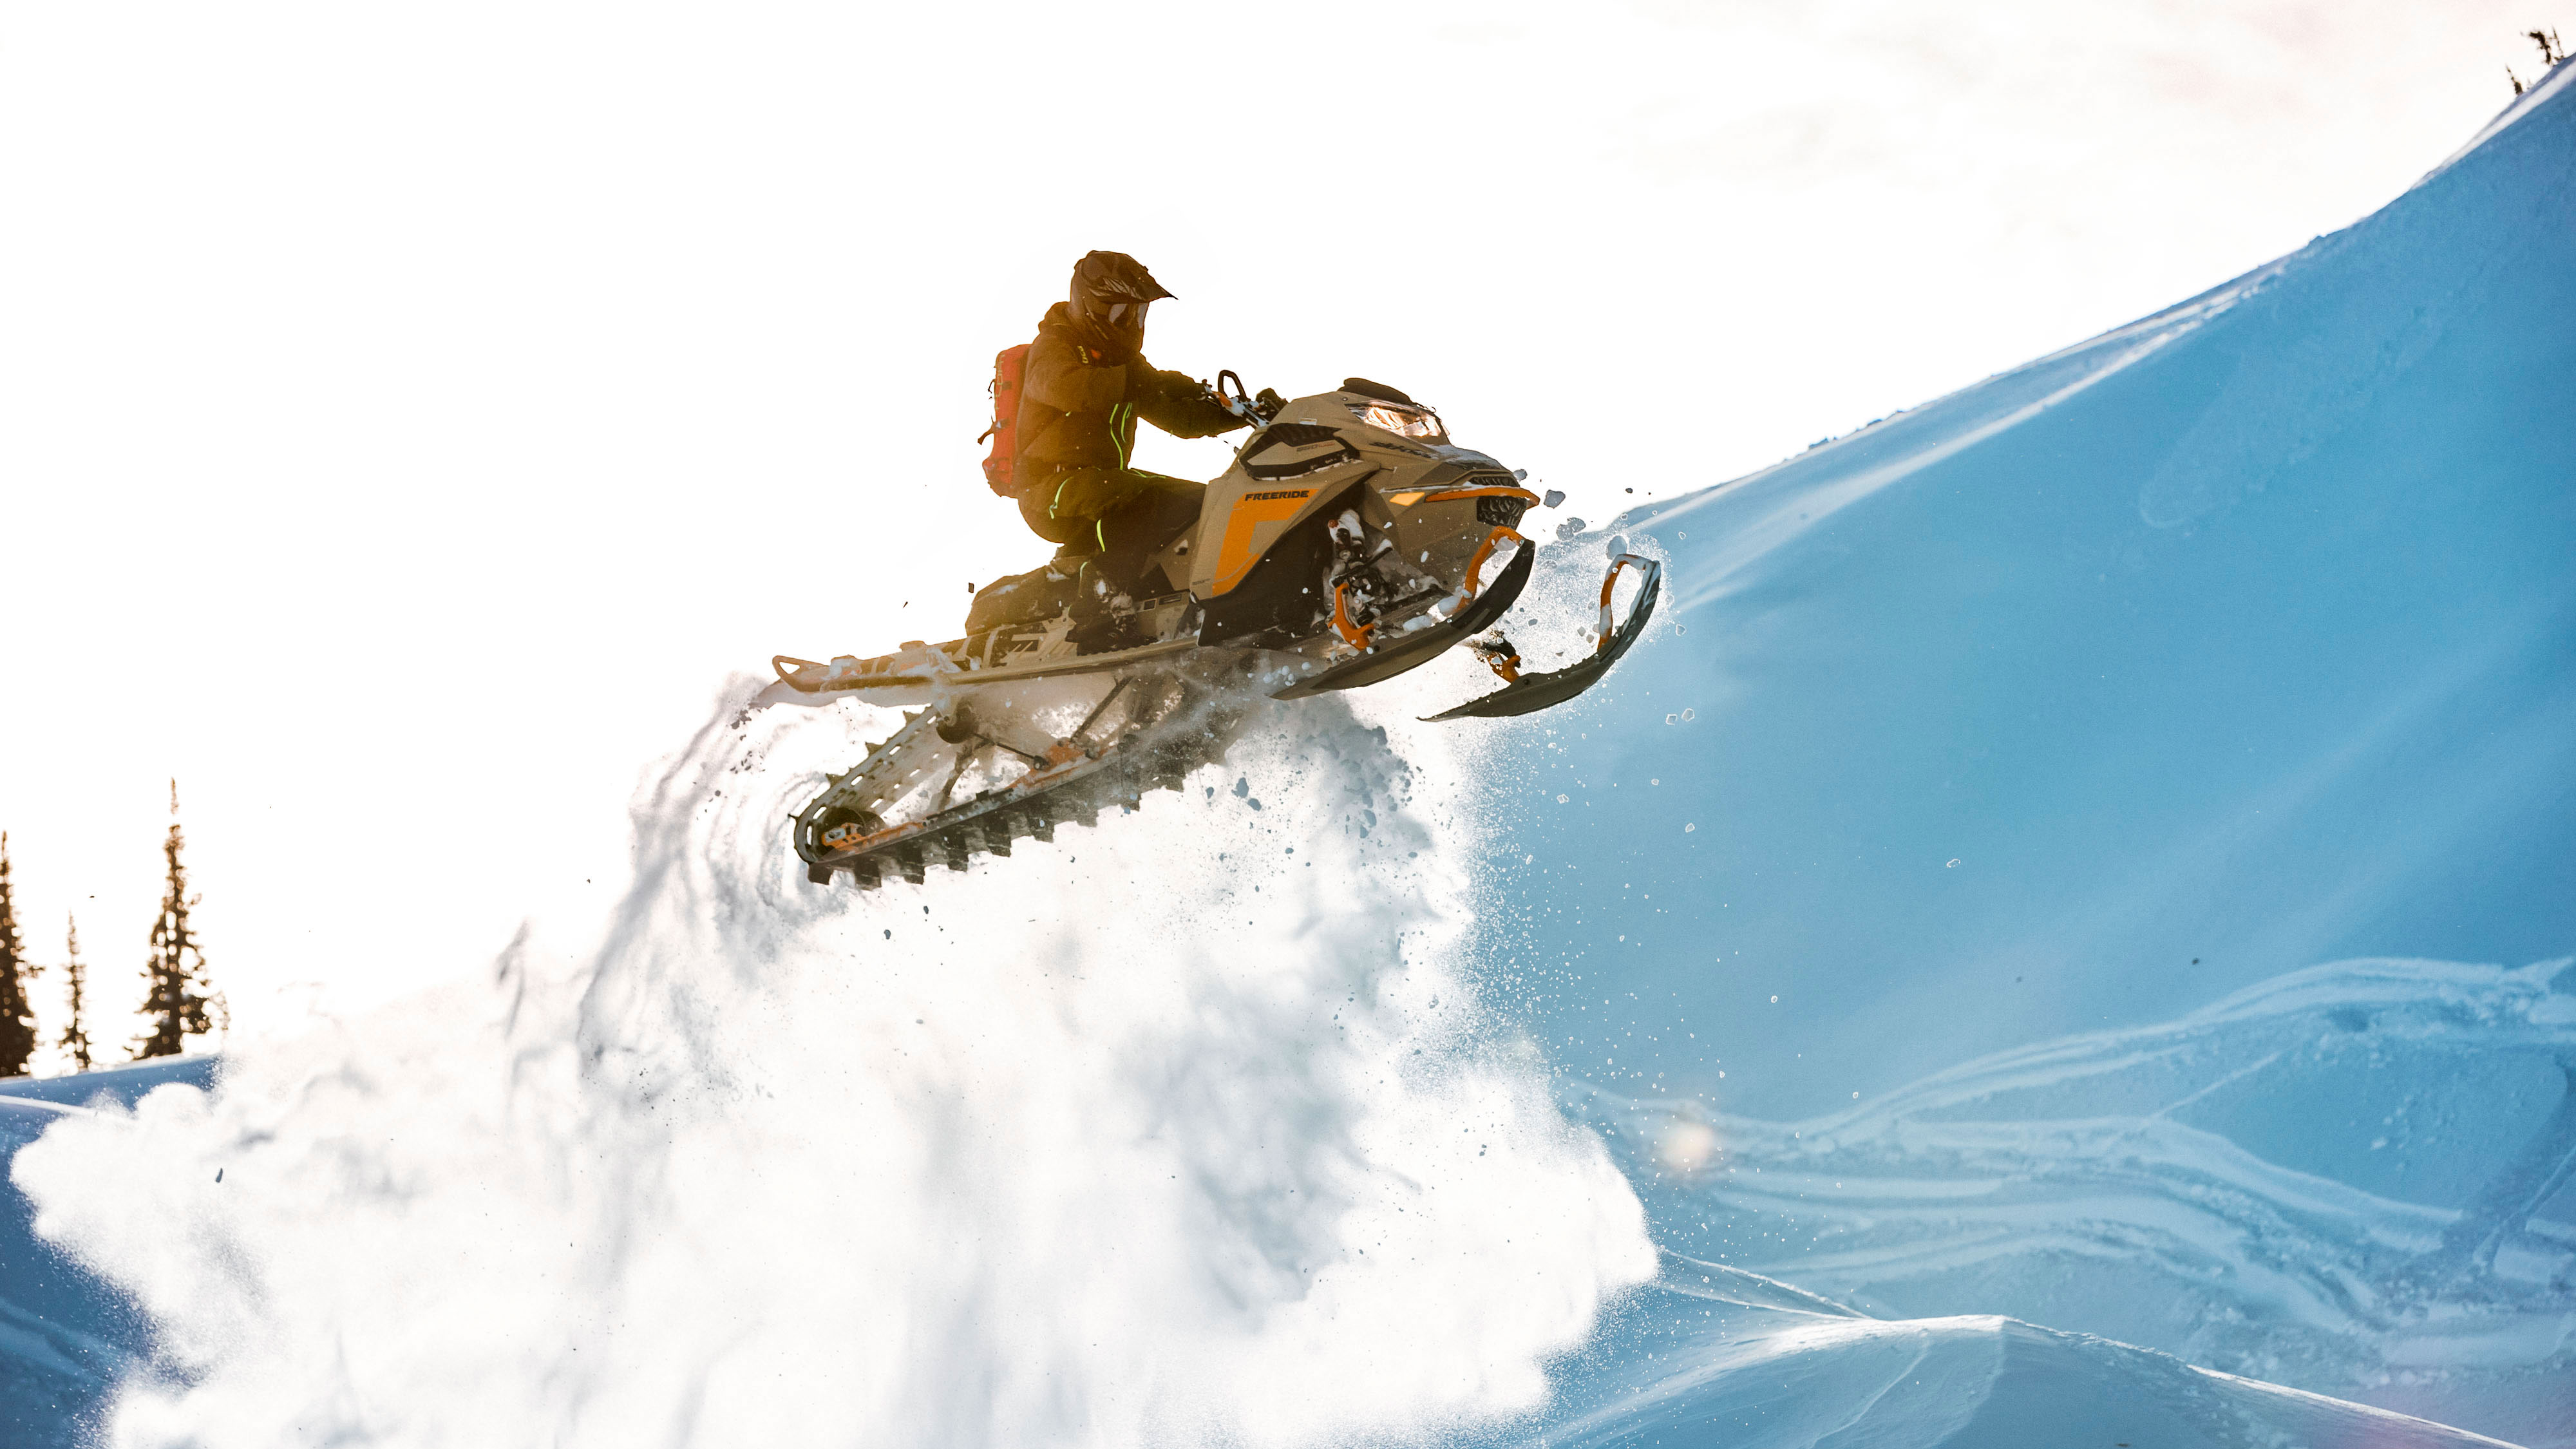 Backcountry riding with 2022 Ski-Doo Freeride